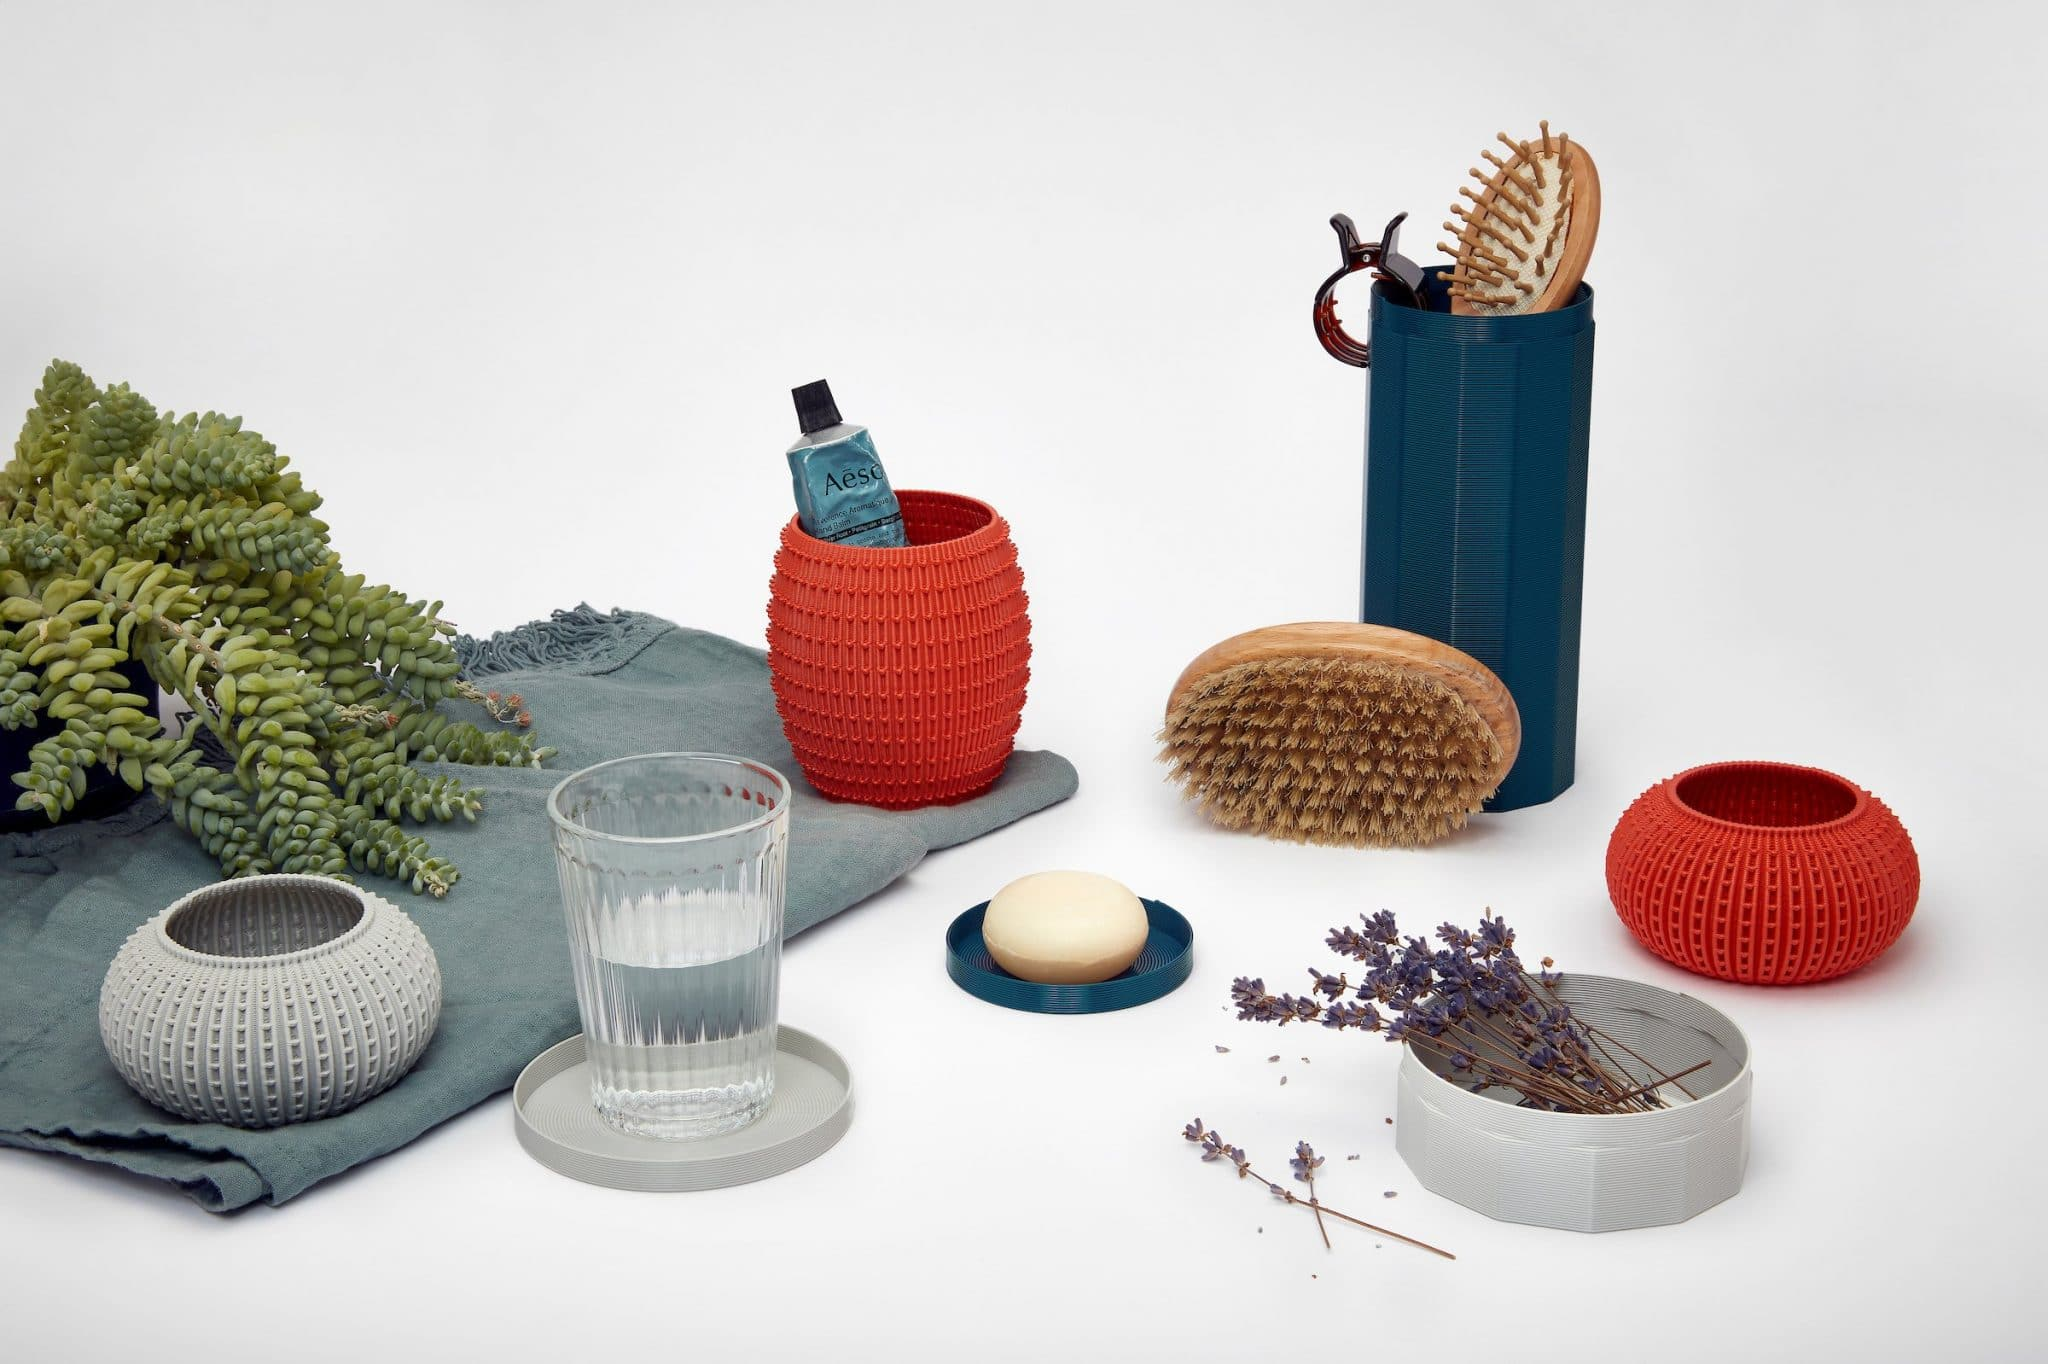 3D printed homeware